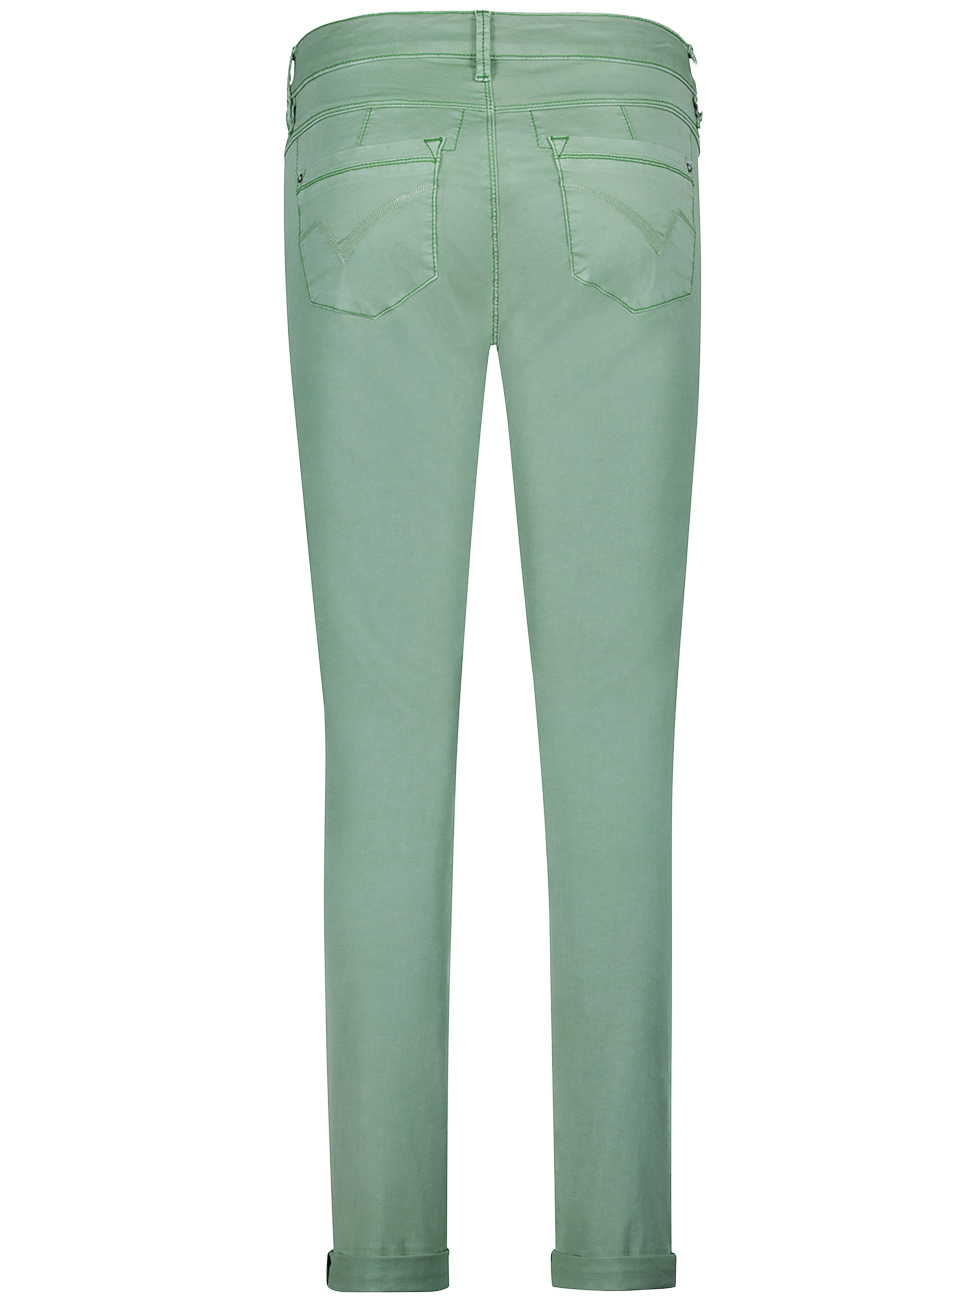 timezone-damen-7-8-hose-nali-slim-fit